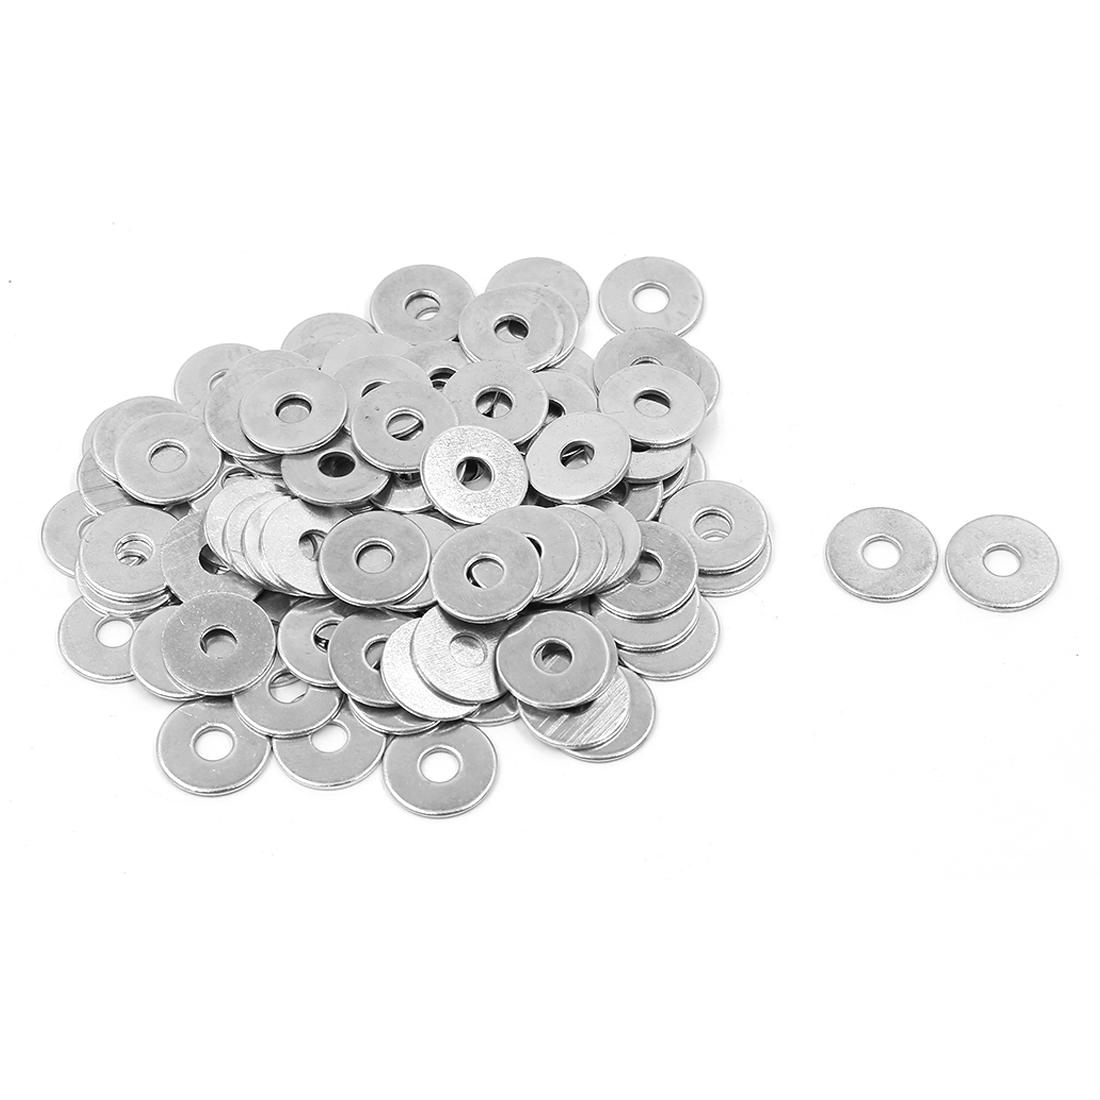 100 Pcs M6x20mmx1.4mm Stainless Steel Metric Round Flat Washer for Bolt Screw